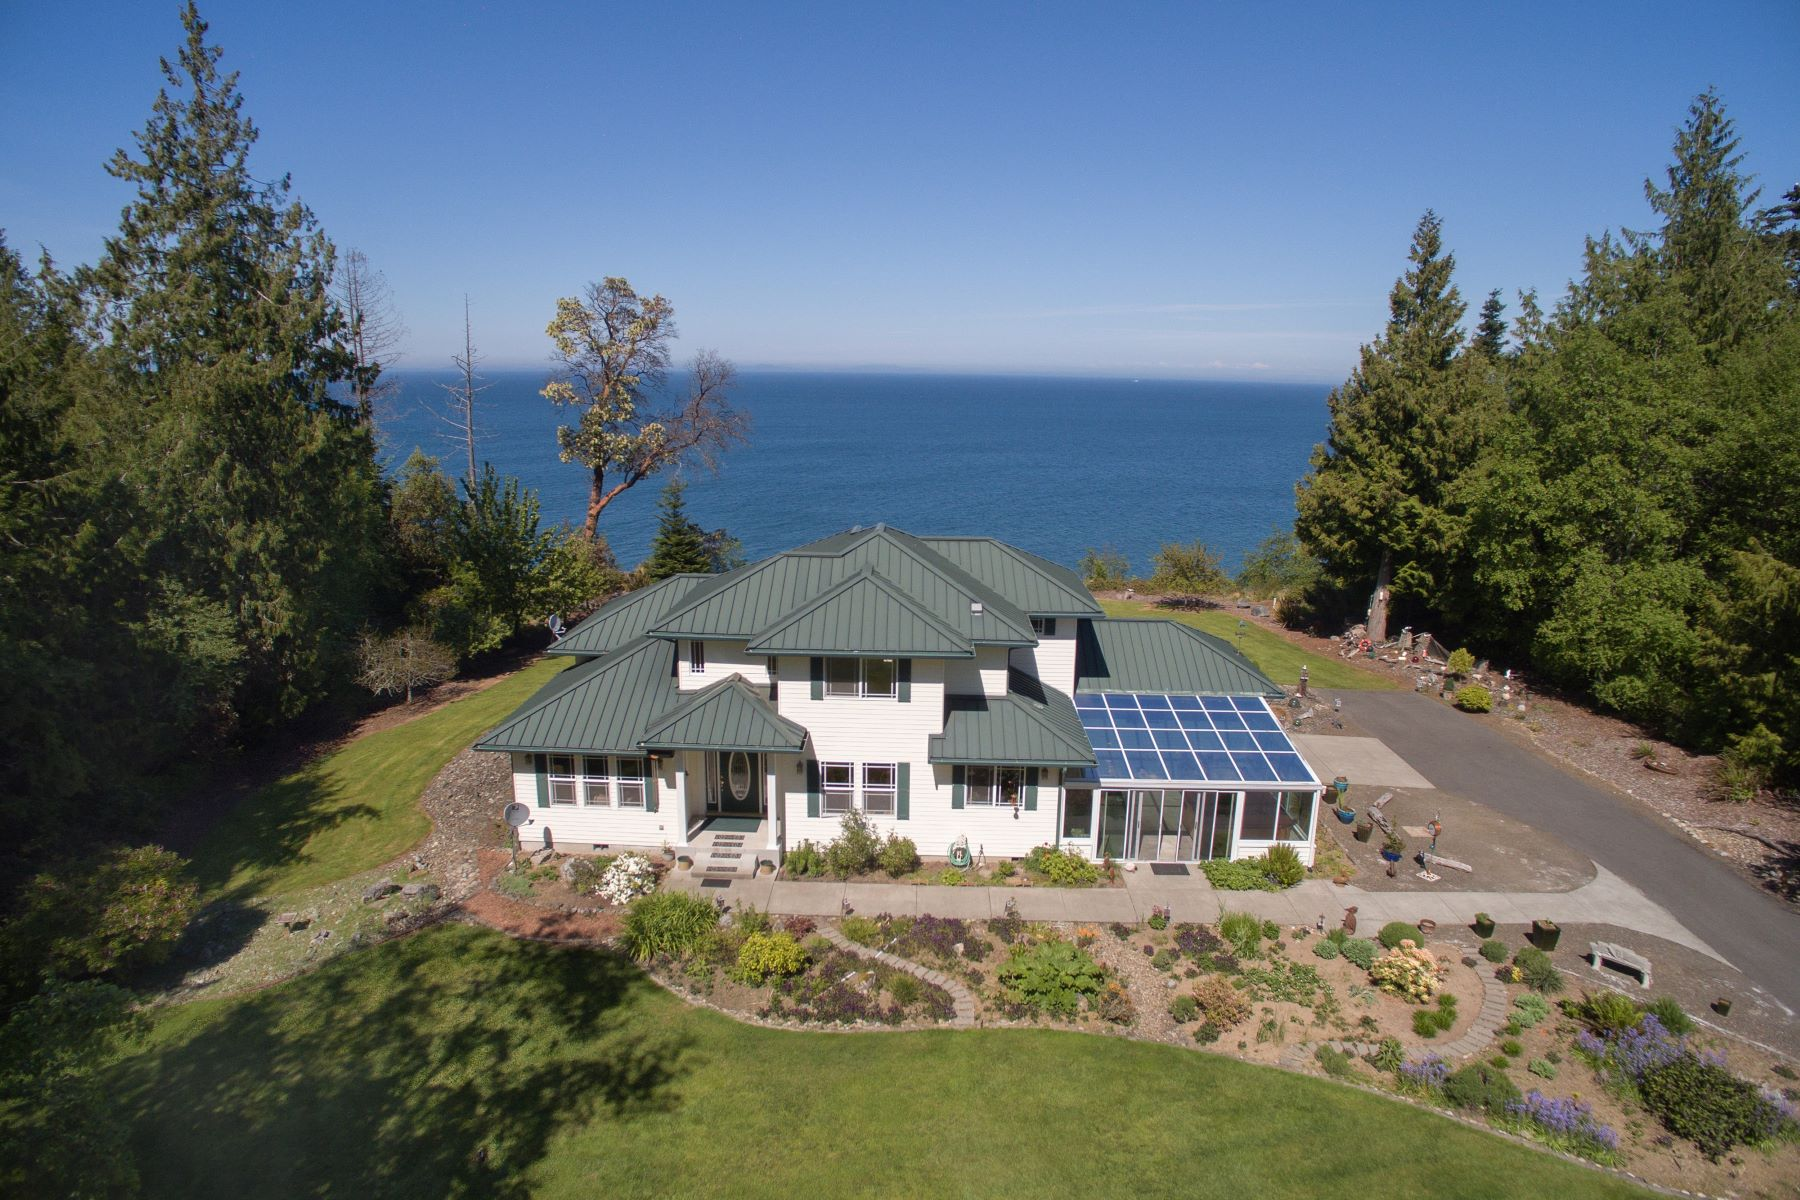 Single Family Home for Sale at Port Angeles Waterfront Home on 5 Acres 113 S Breakerpoint Place Port Angeles, Washington, 98363 United States